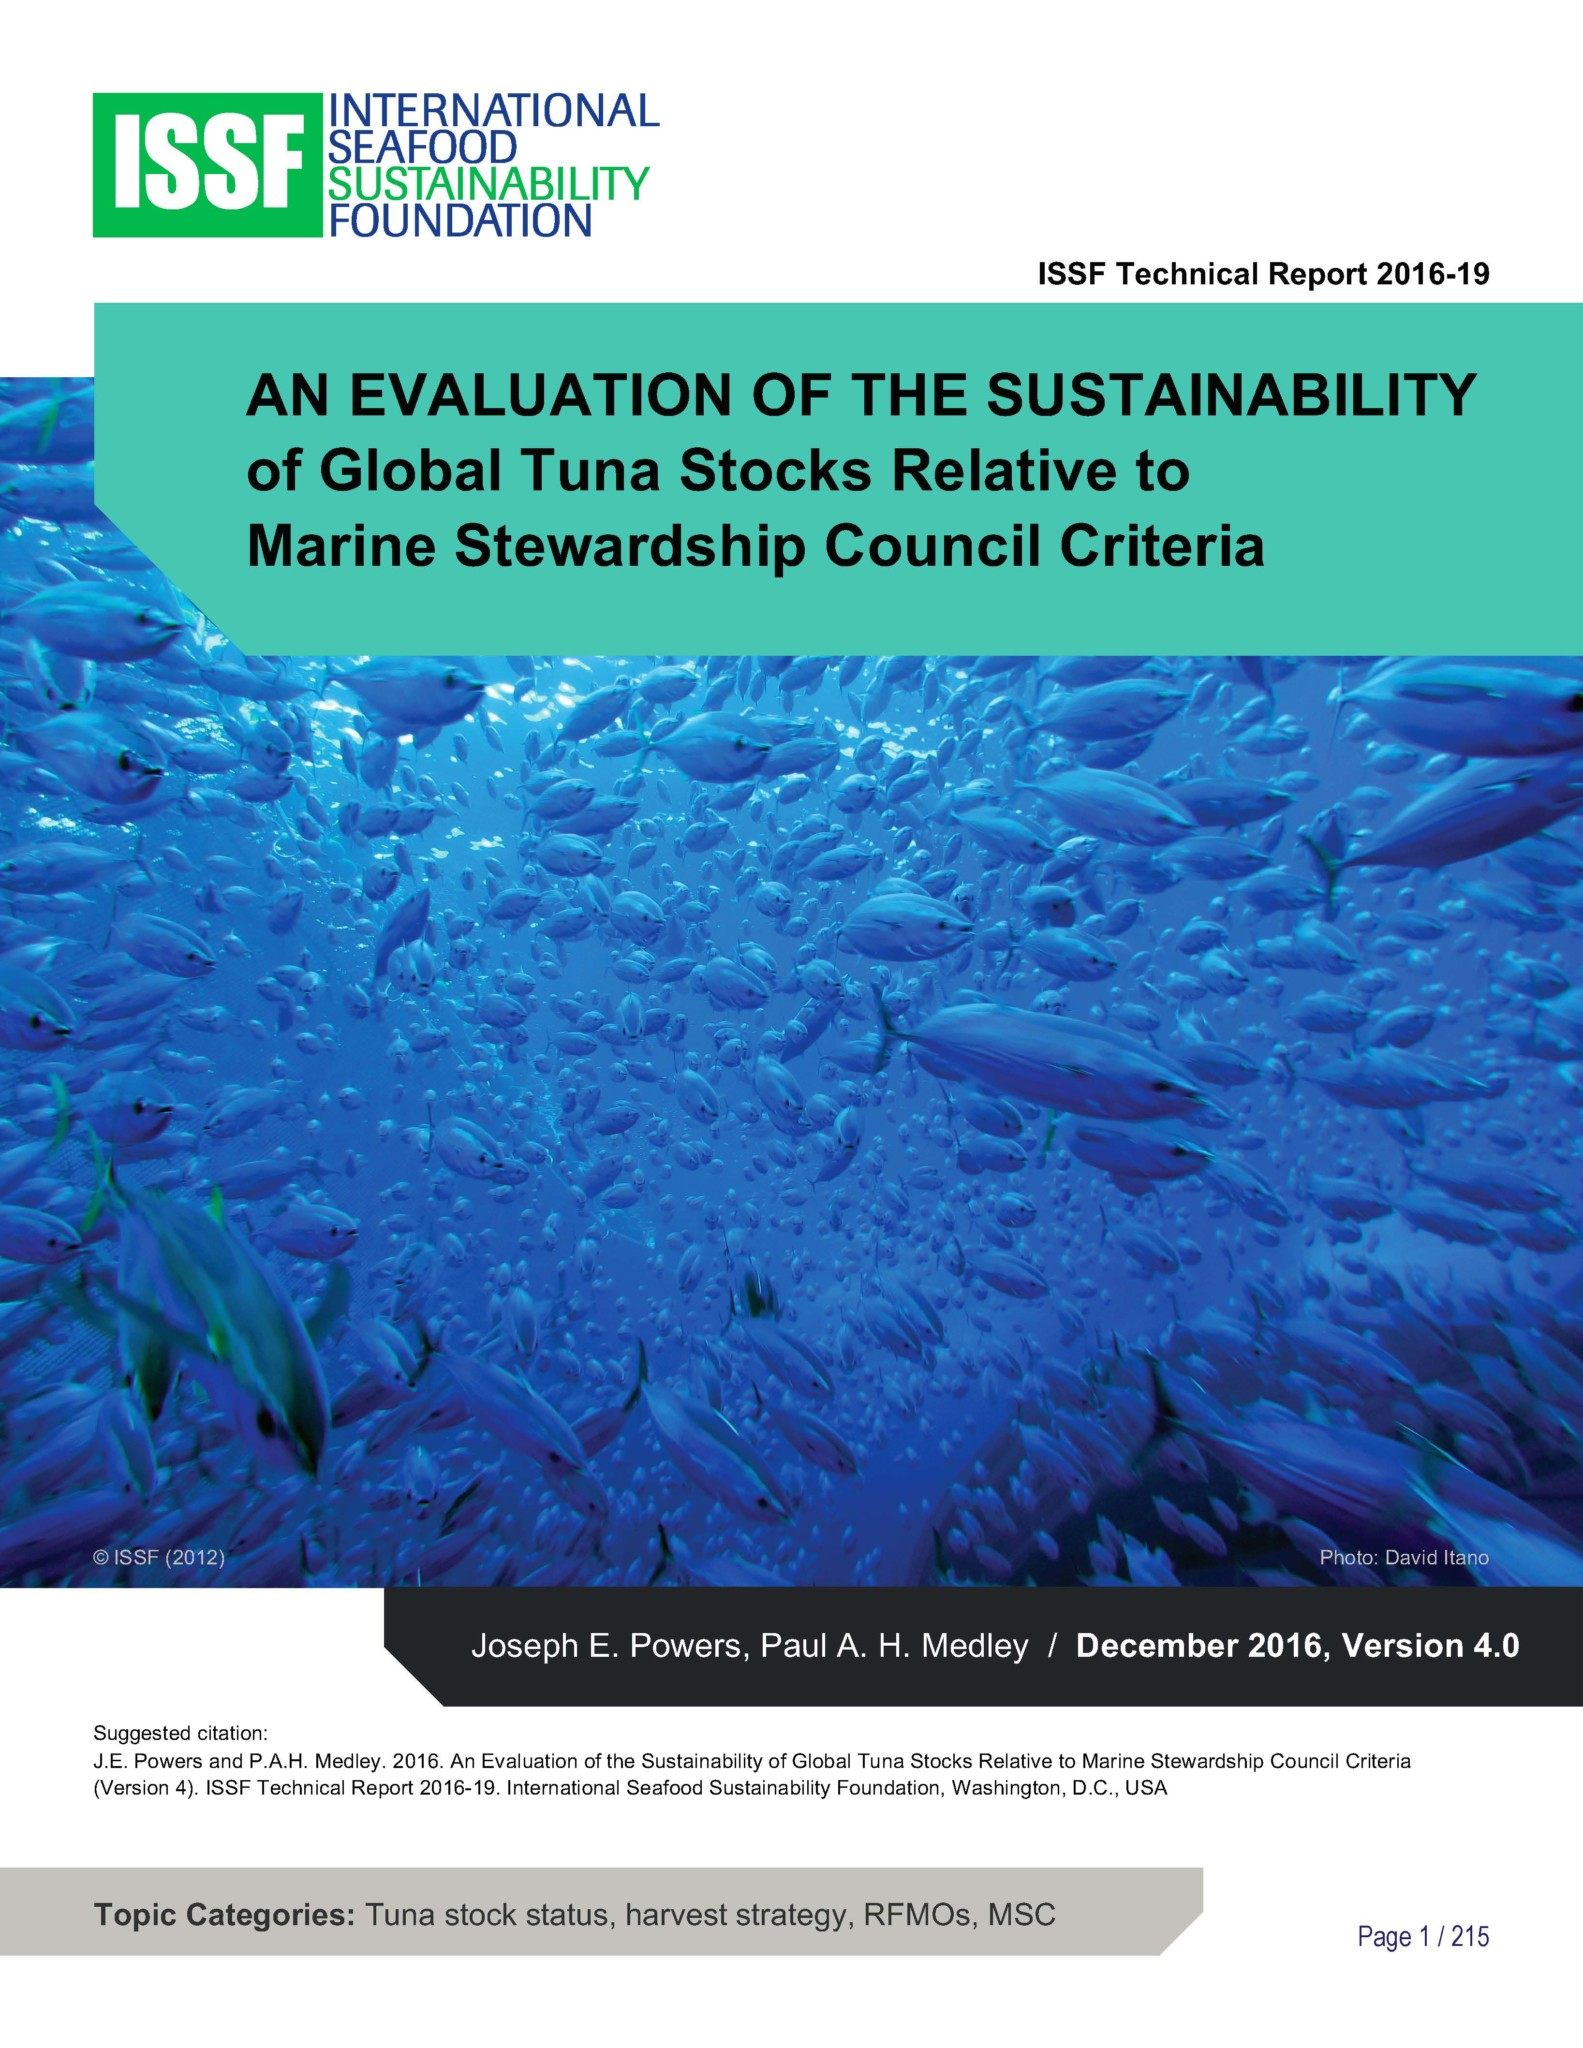 ISSF-2016-19-Evaluation-of-Sustainability-of-Global-Tuna-Stocks-Relative-to-Marine-Stewardship-Council-Criteria_Page_001